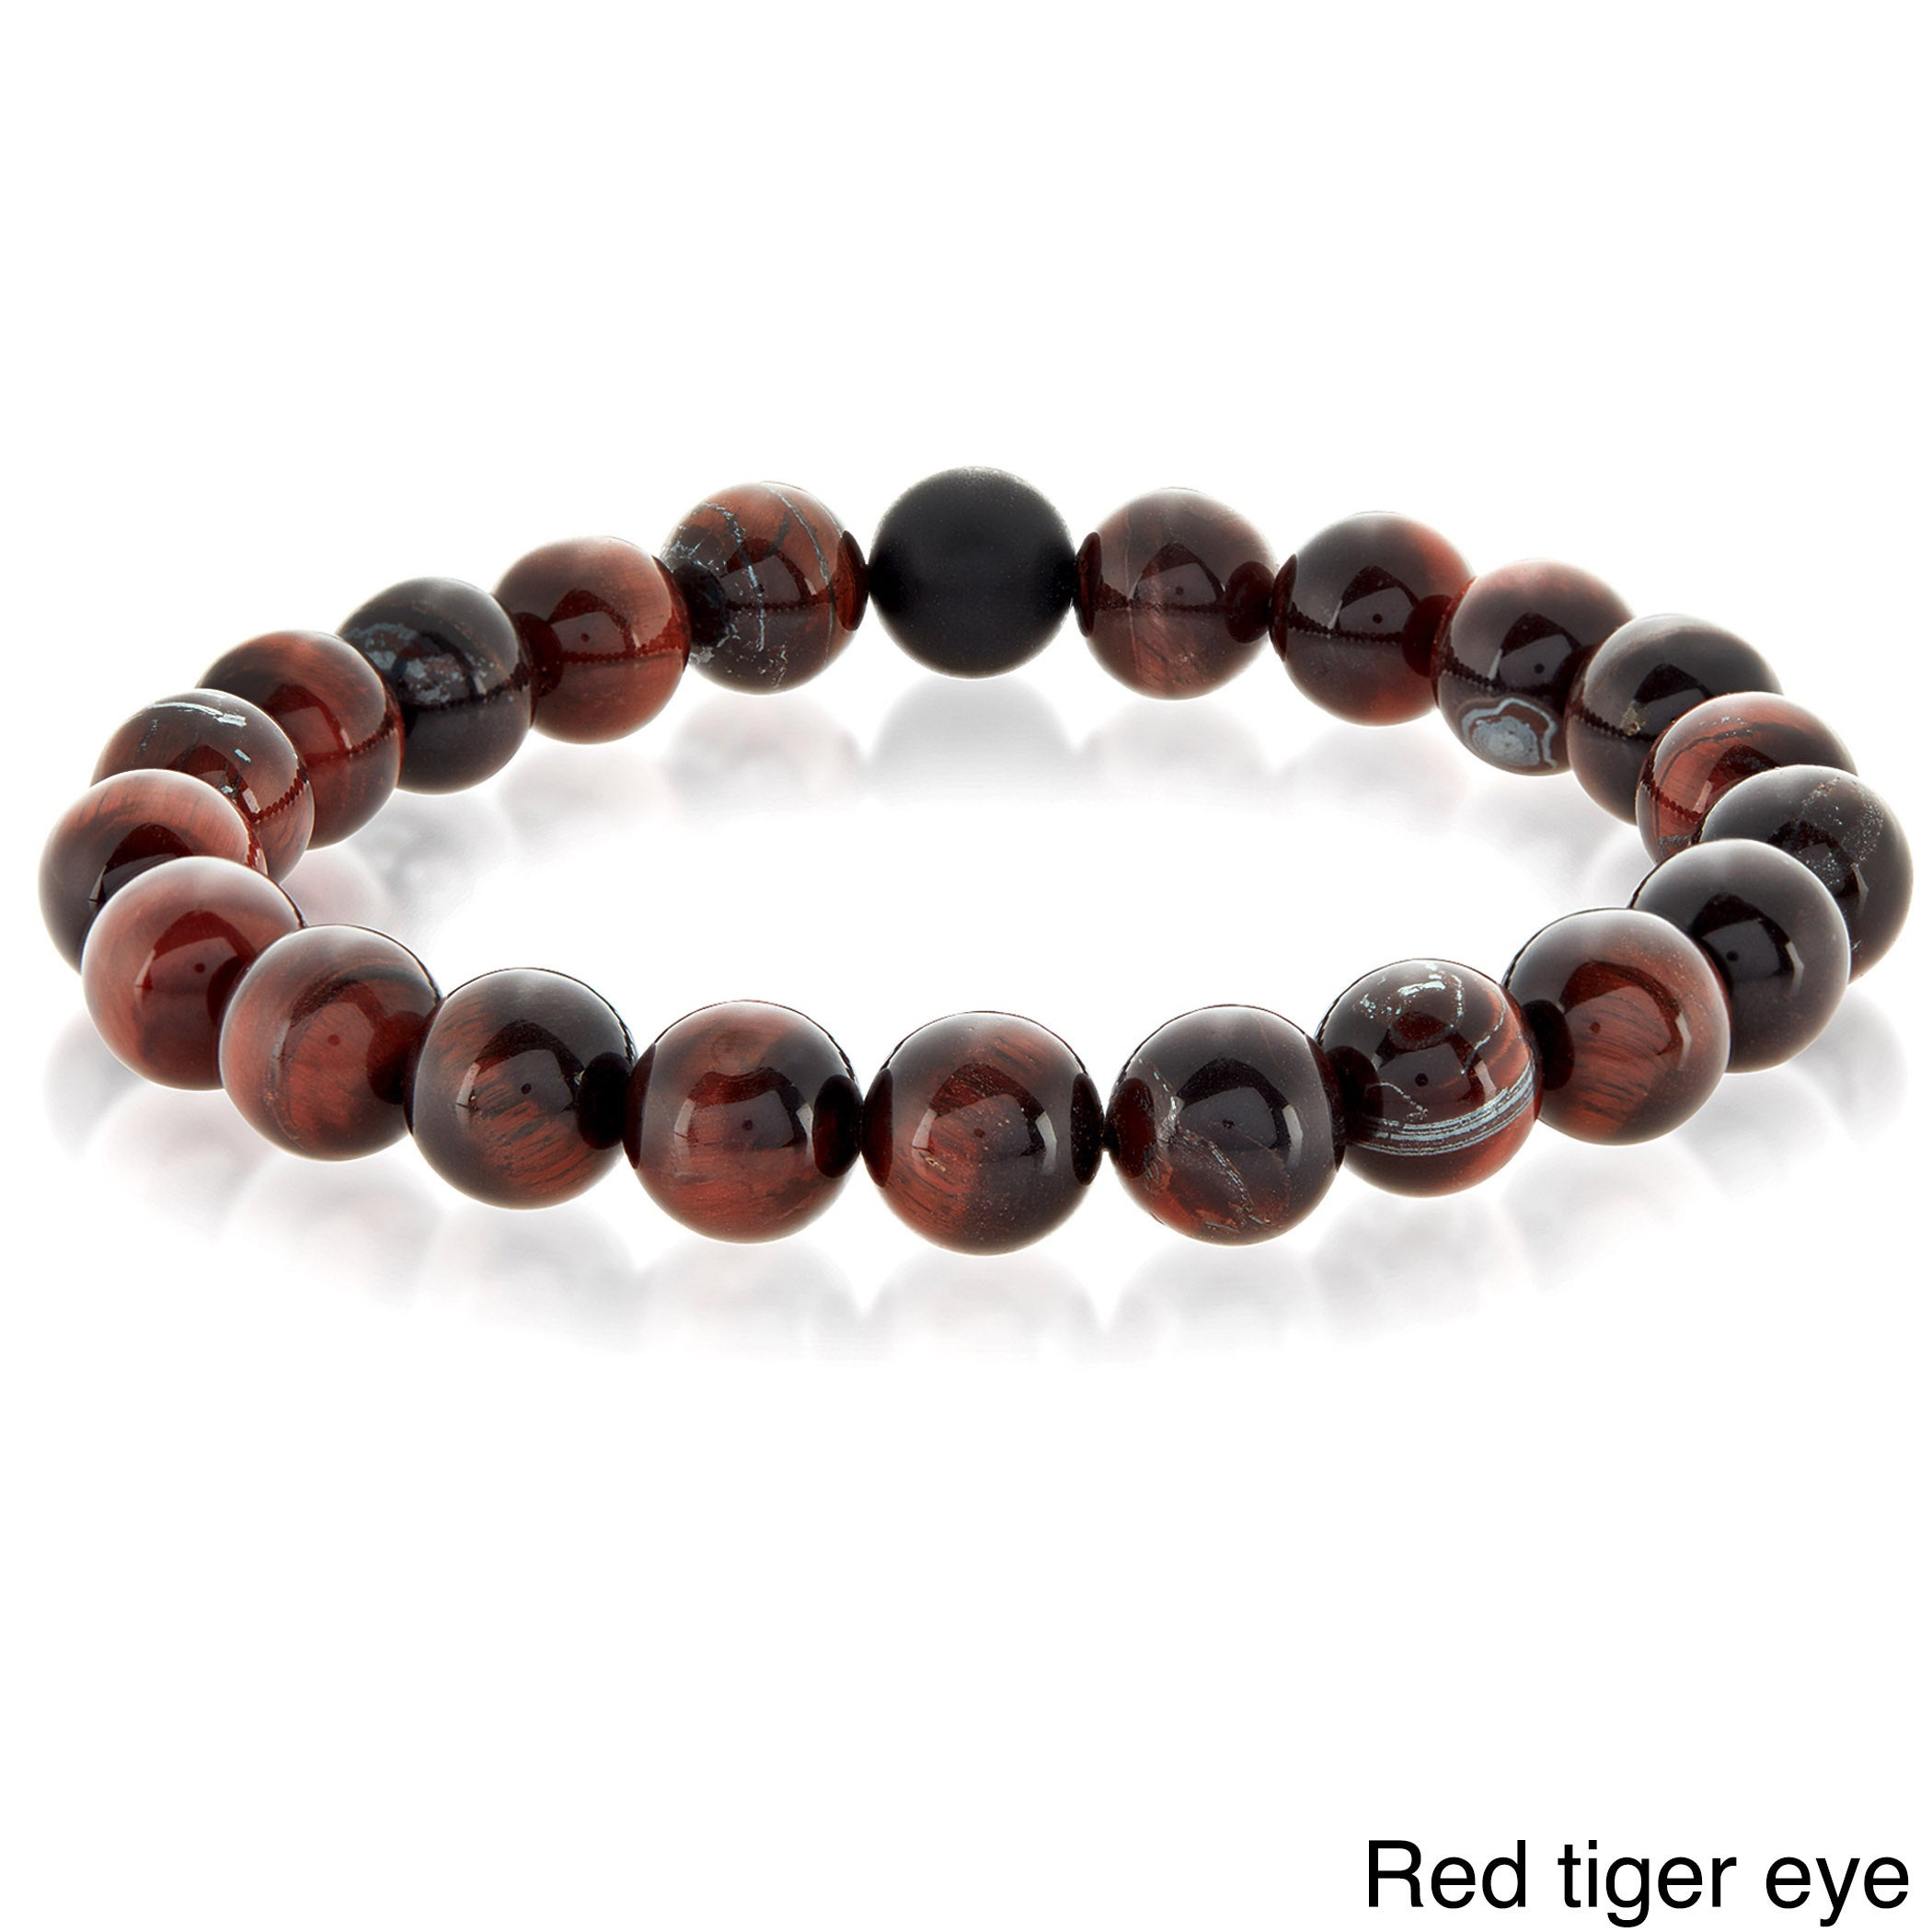 bracelet women prayer natural charm product agate gemstone stretch power men store semi precious handmade colorful beads reiki buddha stretchy yoga chakra for strand stone